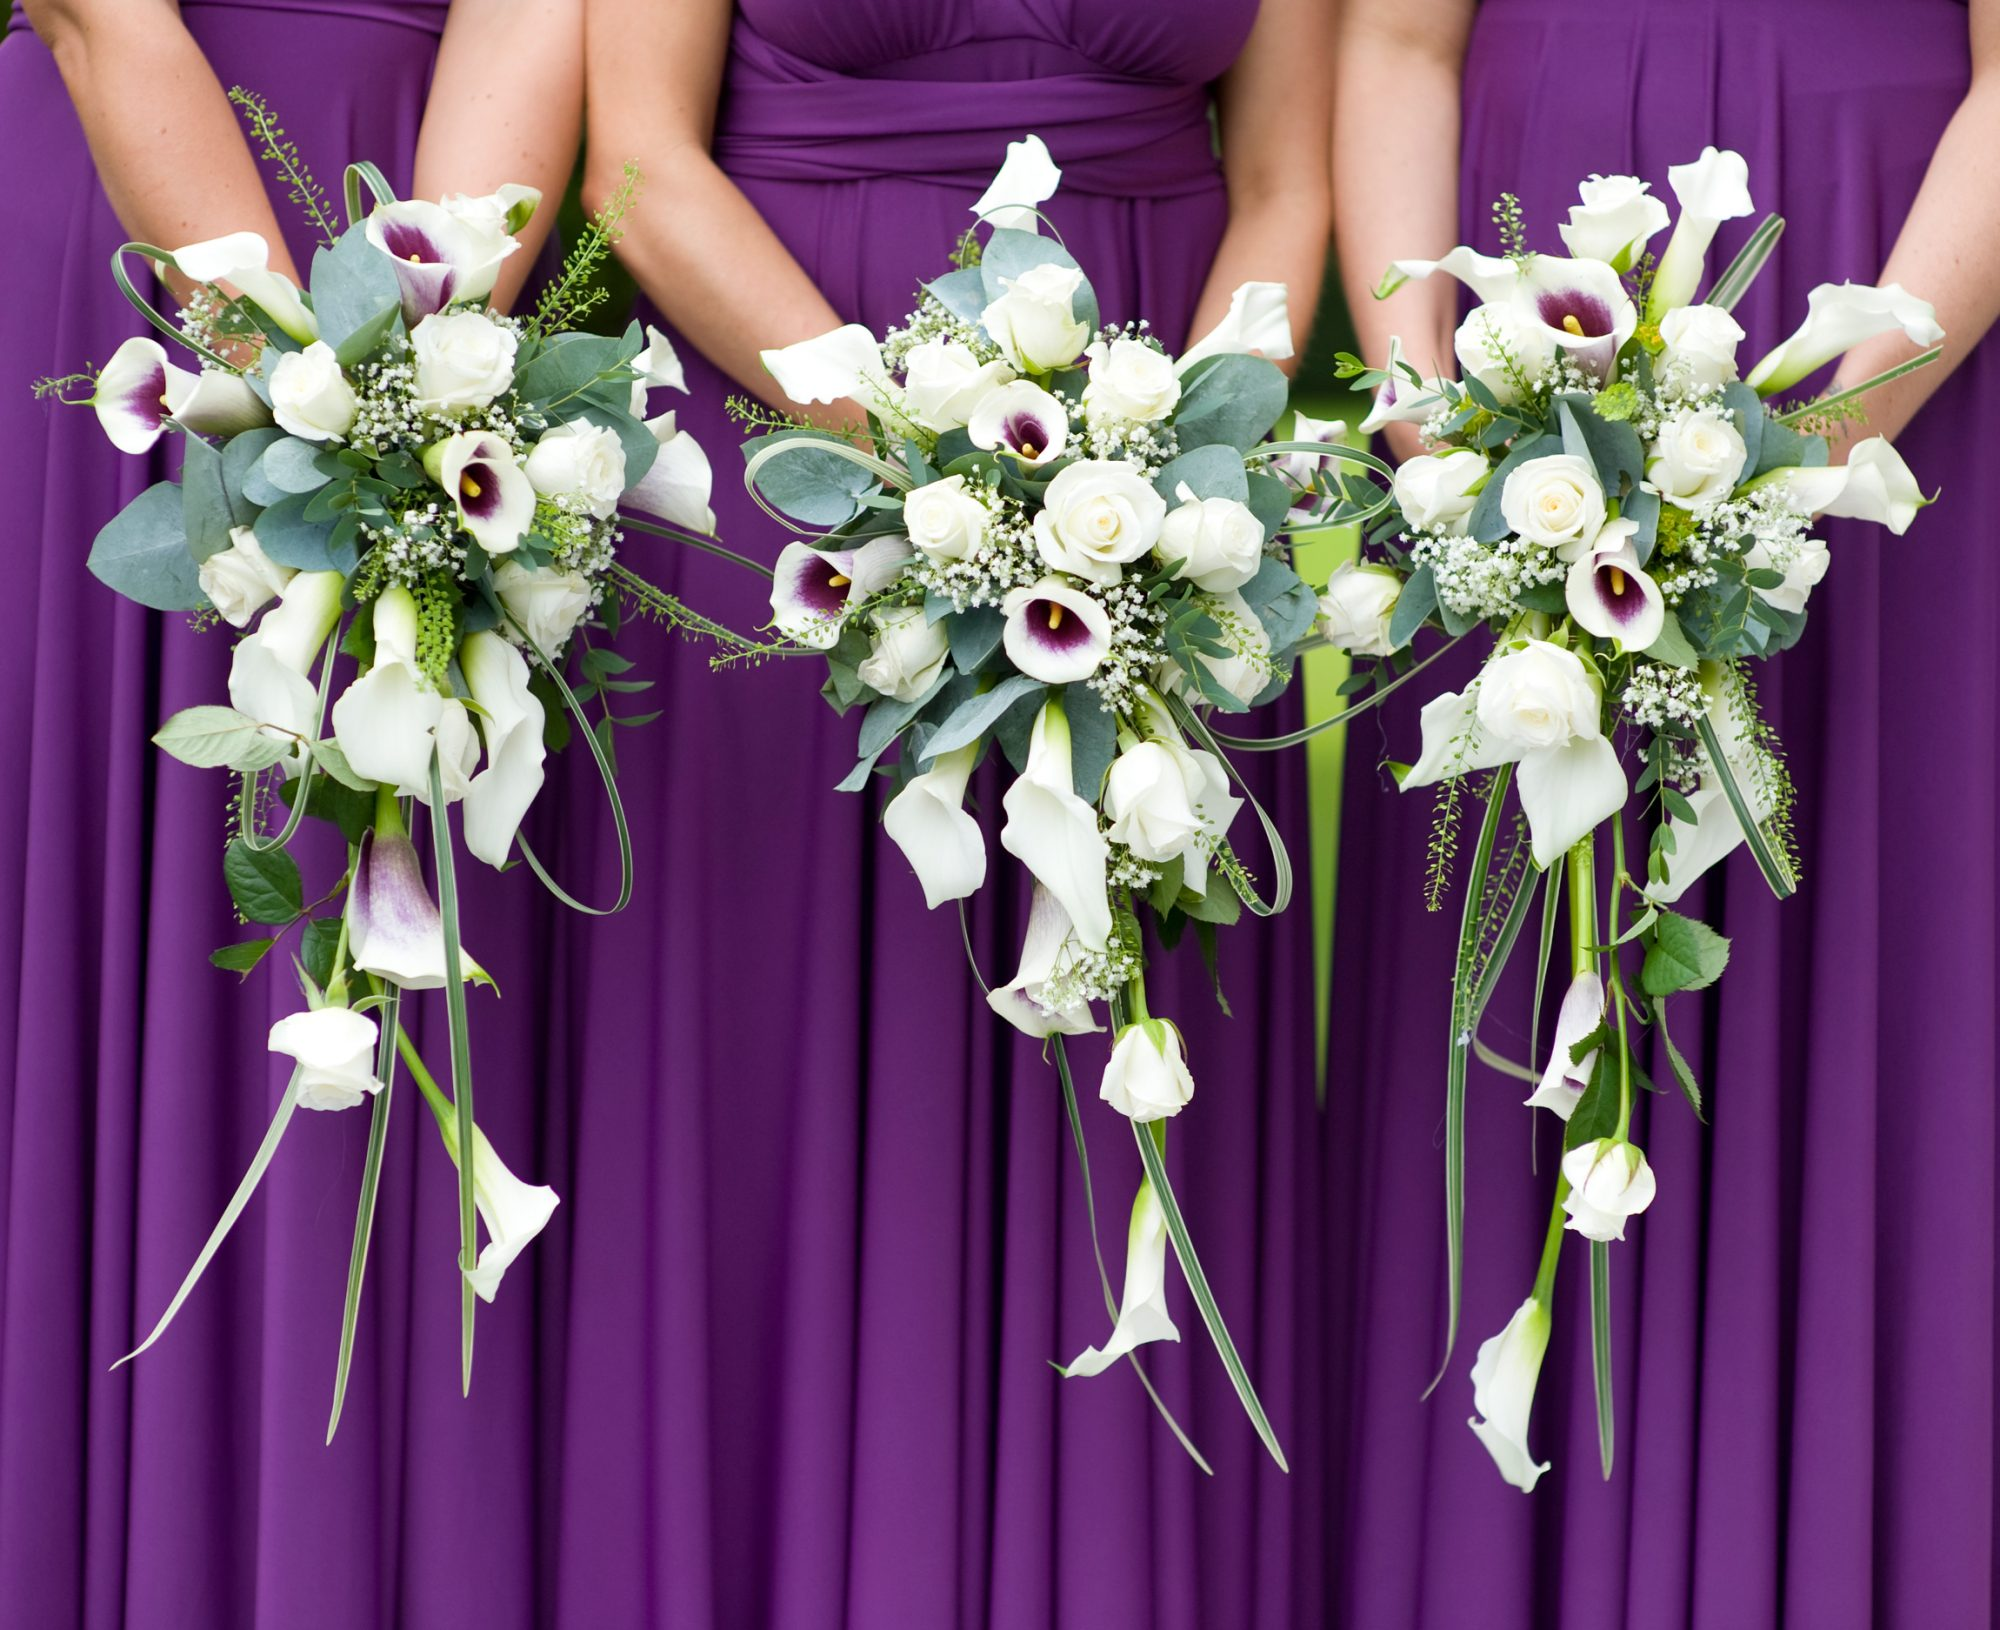 9 Maid Of Honor Duties To Remember On The Big Day